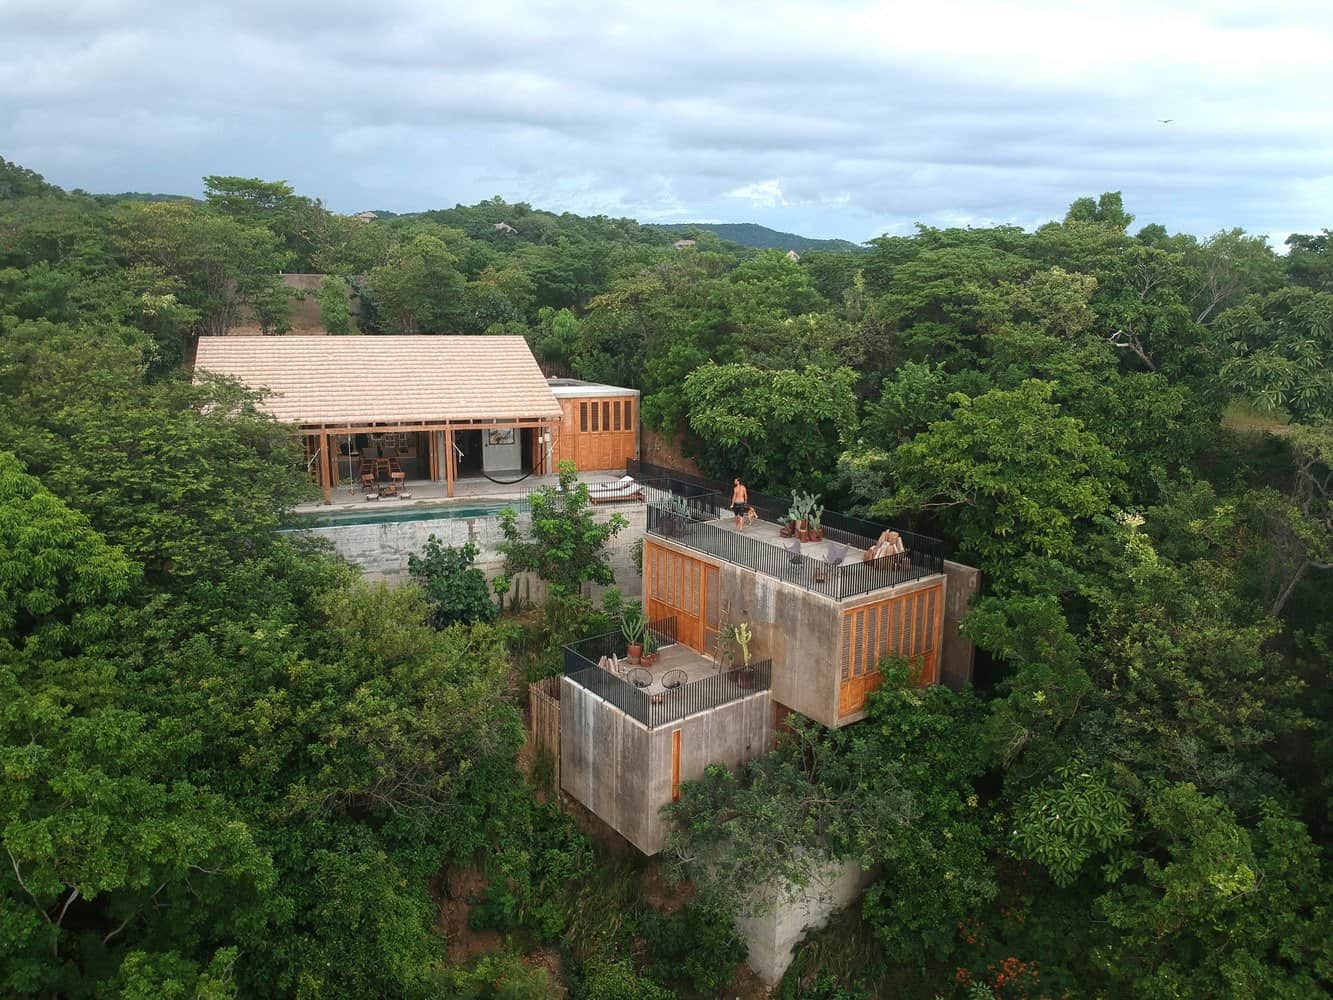 A hillside home in harmony with nature overlooks Mexico's majestic coast